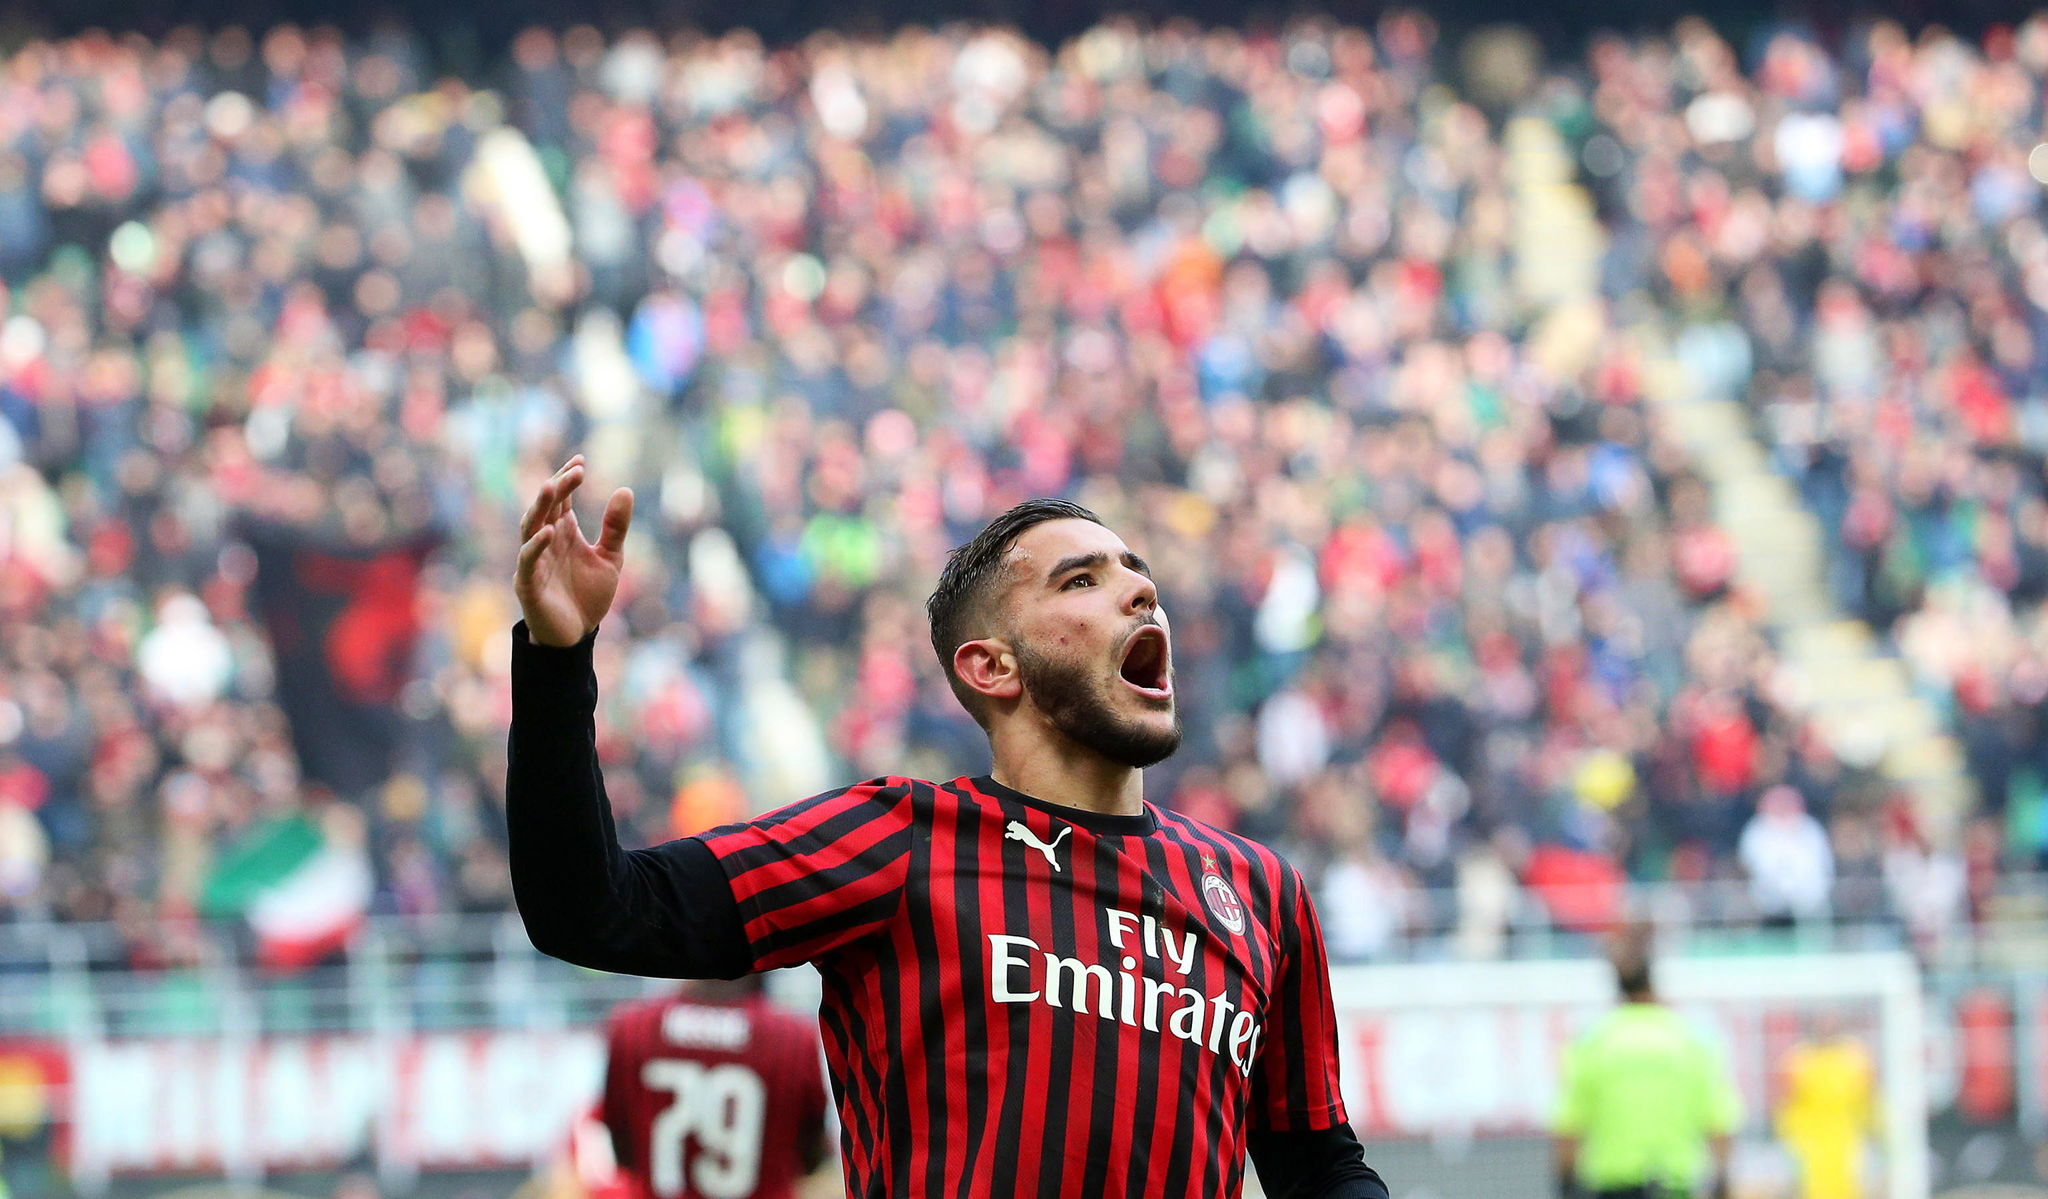 lt;HIT gt;Milan lt;/HIT gt; (Italy), 19/01/2020.- lt;HIT gt;Milan lt;/HIT gt;s lt;HIT gt;Theo lt;/HIT gt; Hernandez celebrates after scoring the 2-1 lead during the Italian Serie A soccer match between AC lt;HIT gt;Milan lt;/HIT gt; and Udinese Calcio at Giuseppe Meazza stadium in lt;HIT gt;Milan lt;/HIT gt;, Italy, 19 January 2020. (Italia) EFE/EPA/MATTEO BAZZI